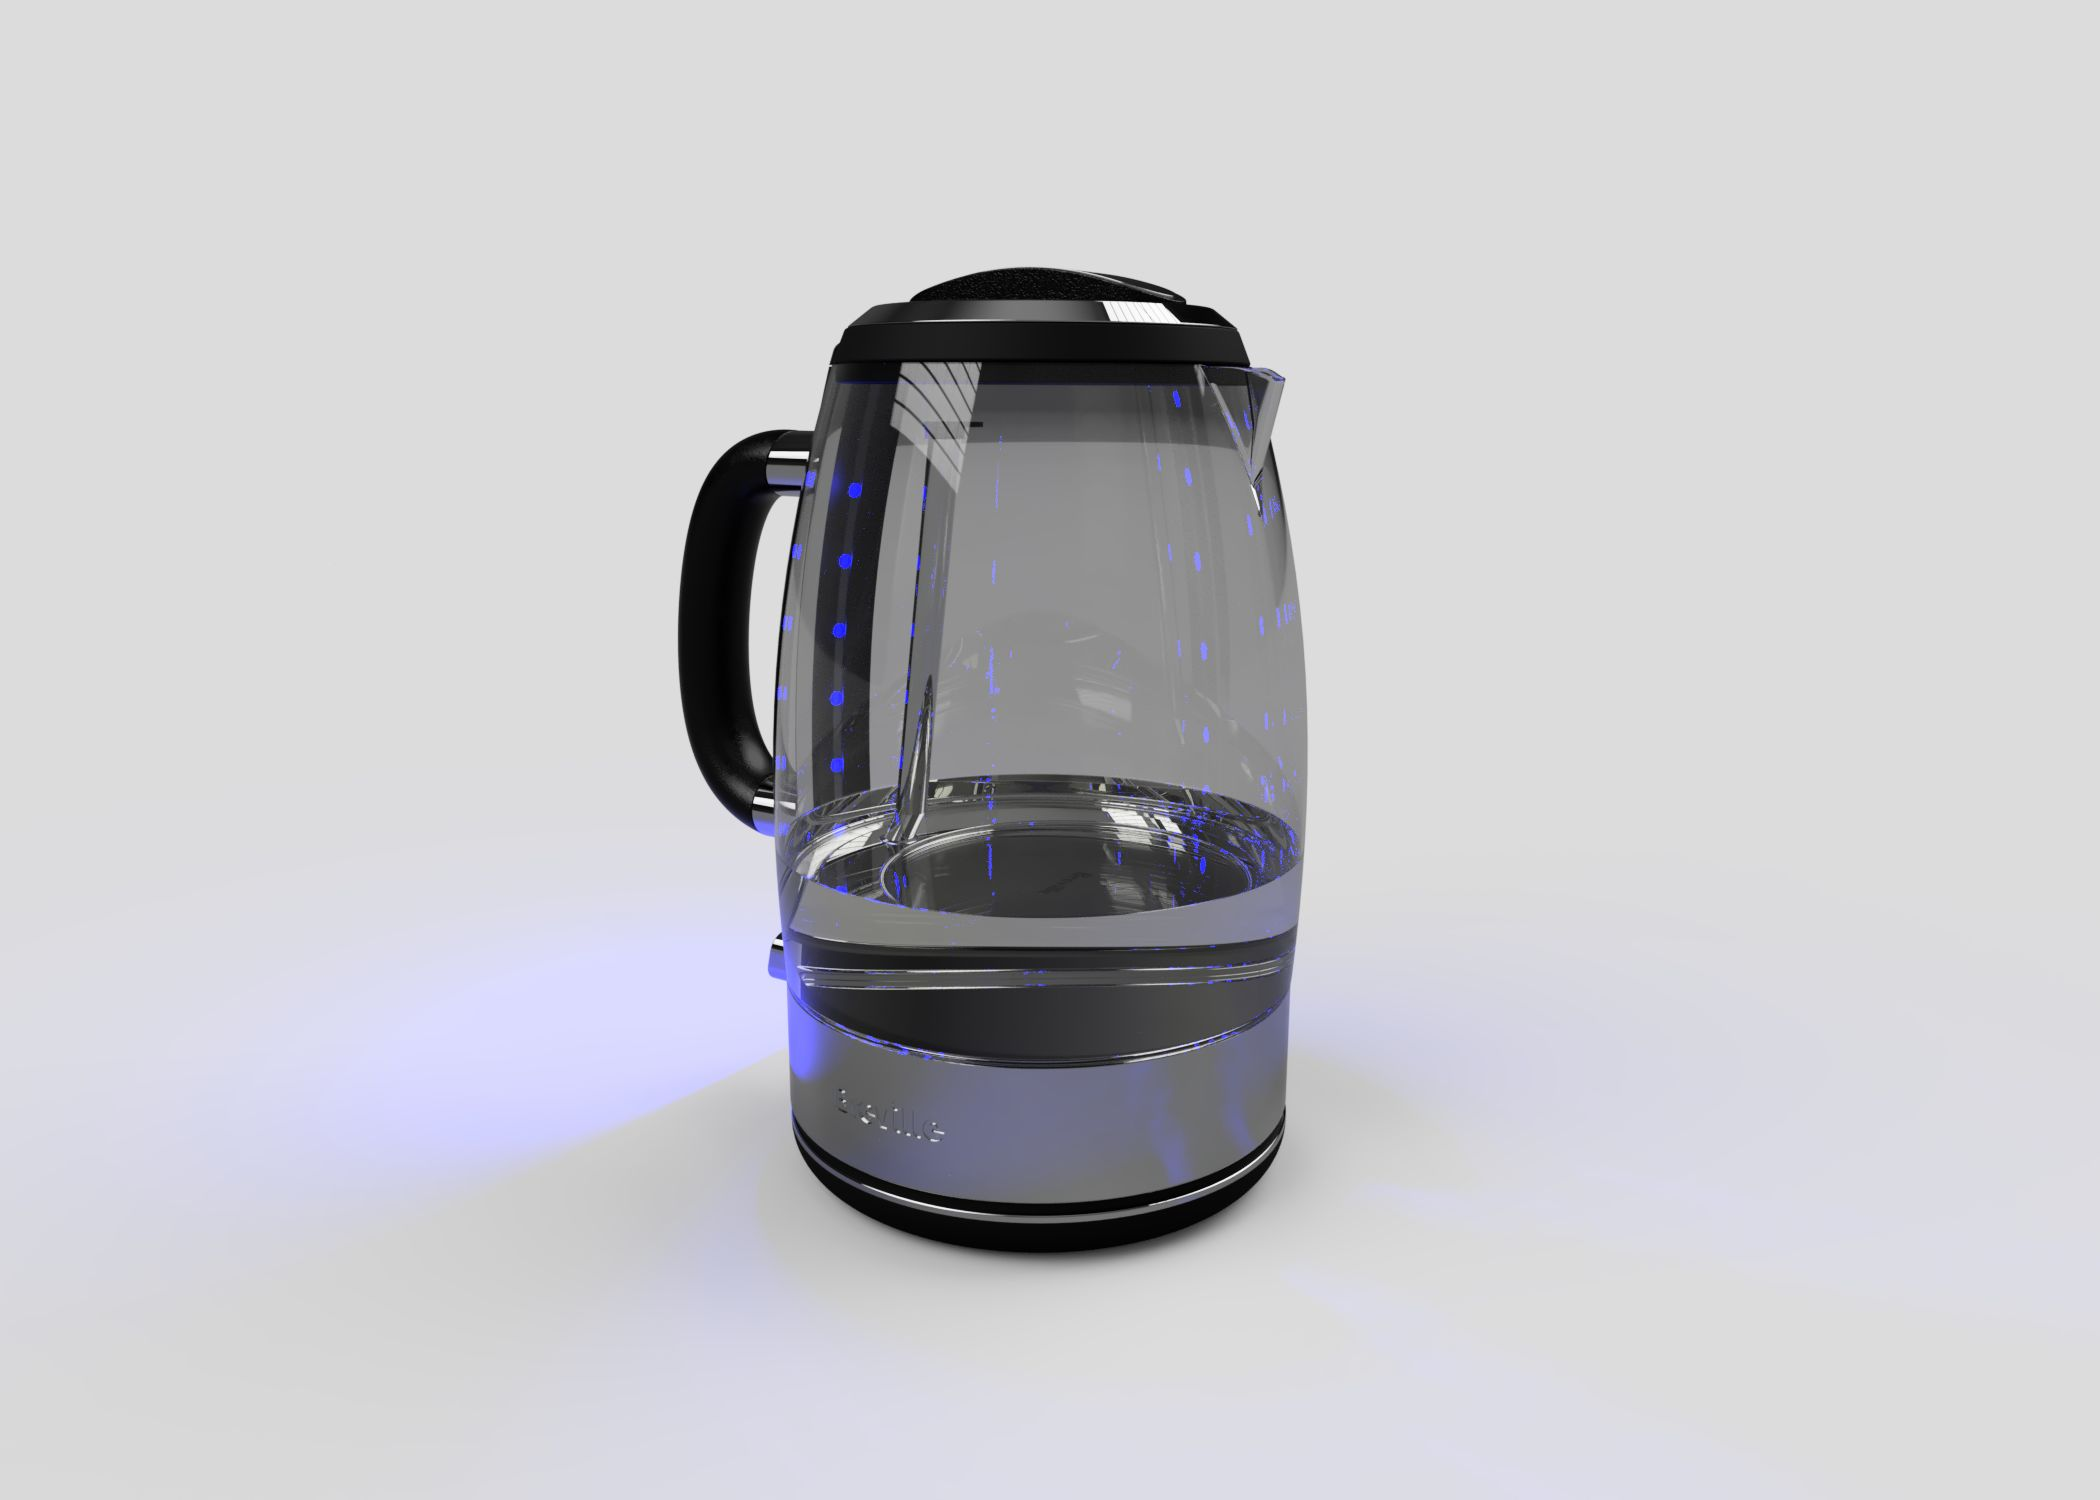 Glass-kettle-2020-may-08-11-30-08am-000-customizedview18370466389-3500-3500